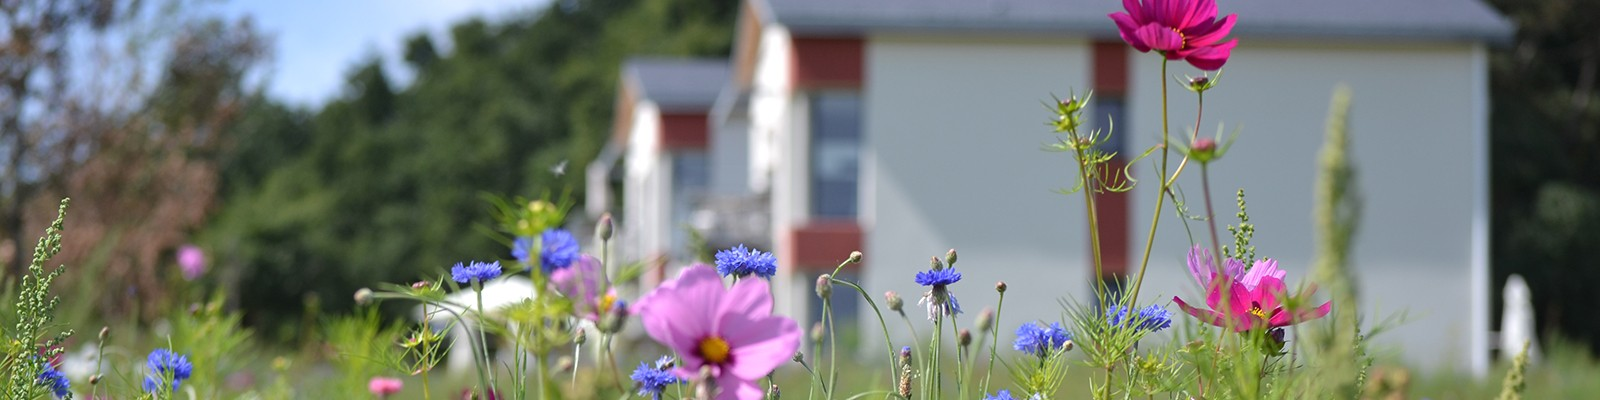 Eco-friendly holiday in an apartment for 4 to 6 persons